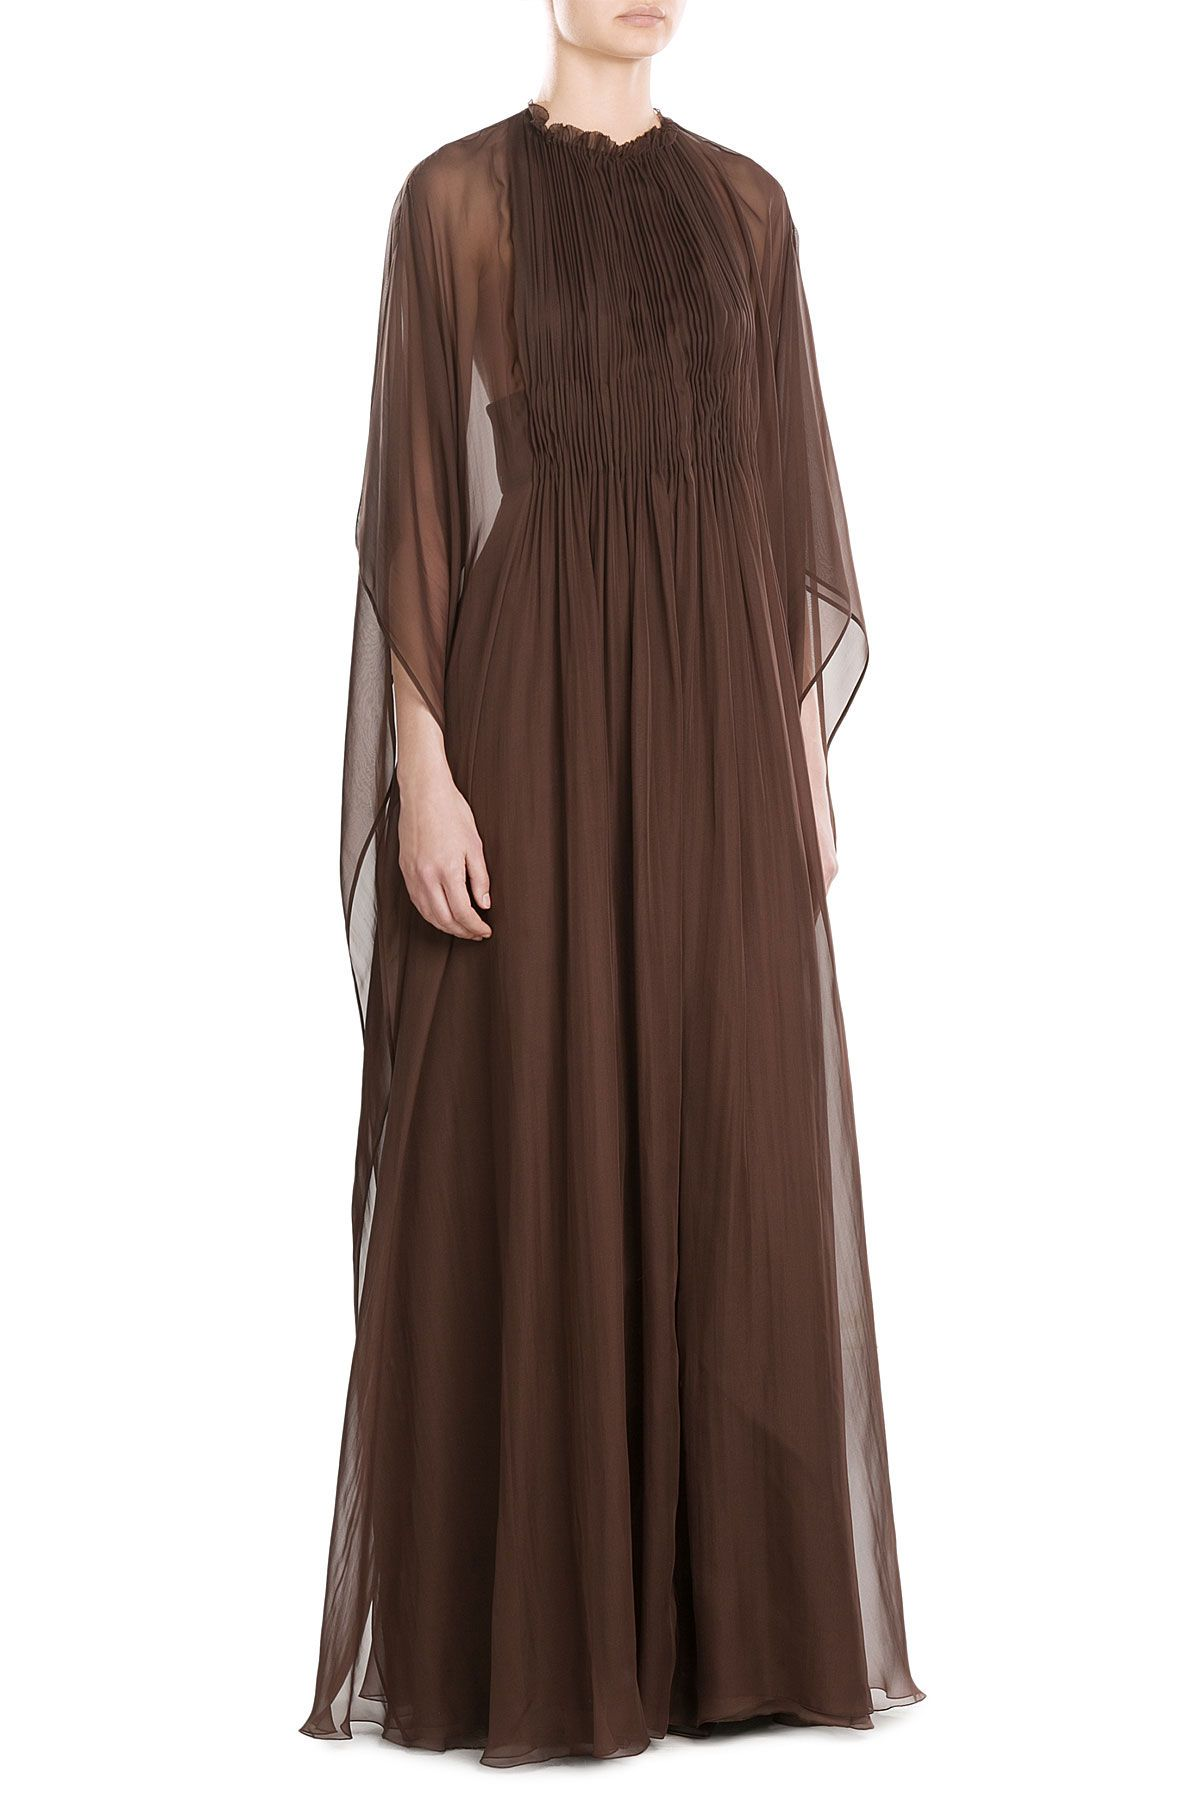 Valentinous floorgrazing silk dress is styled with a sheer chiffon